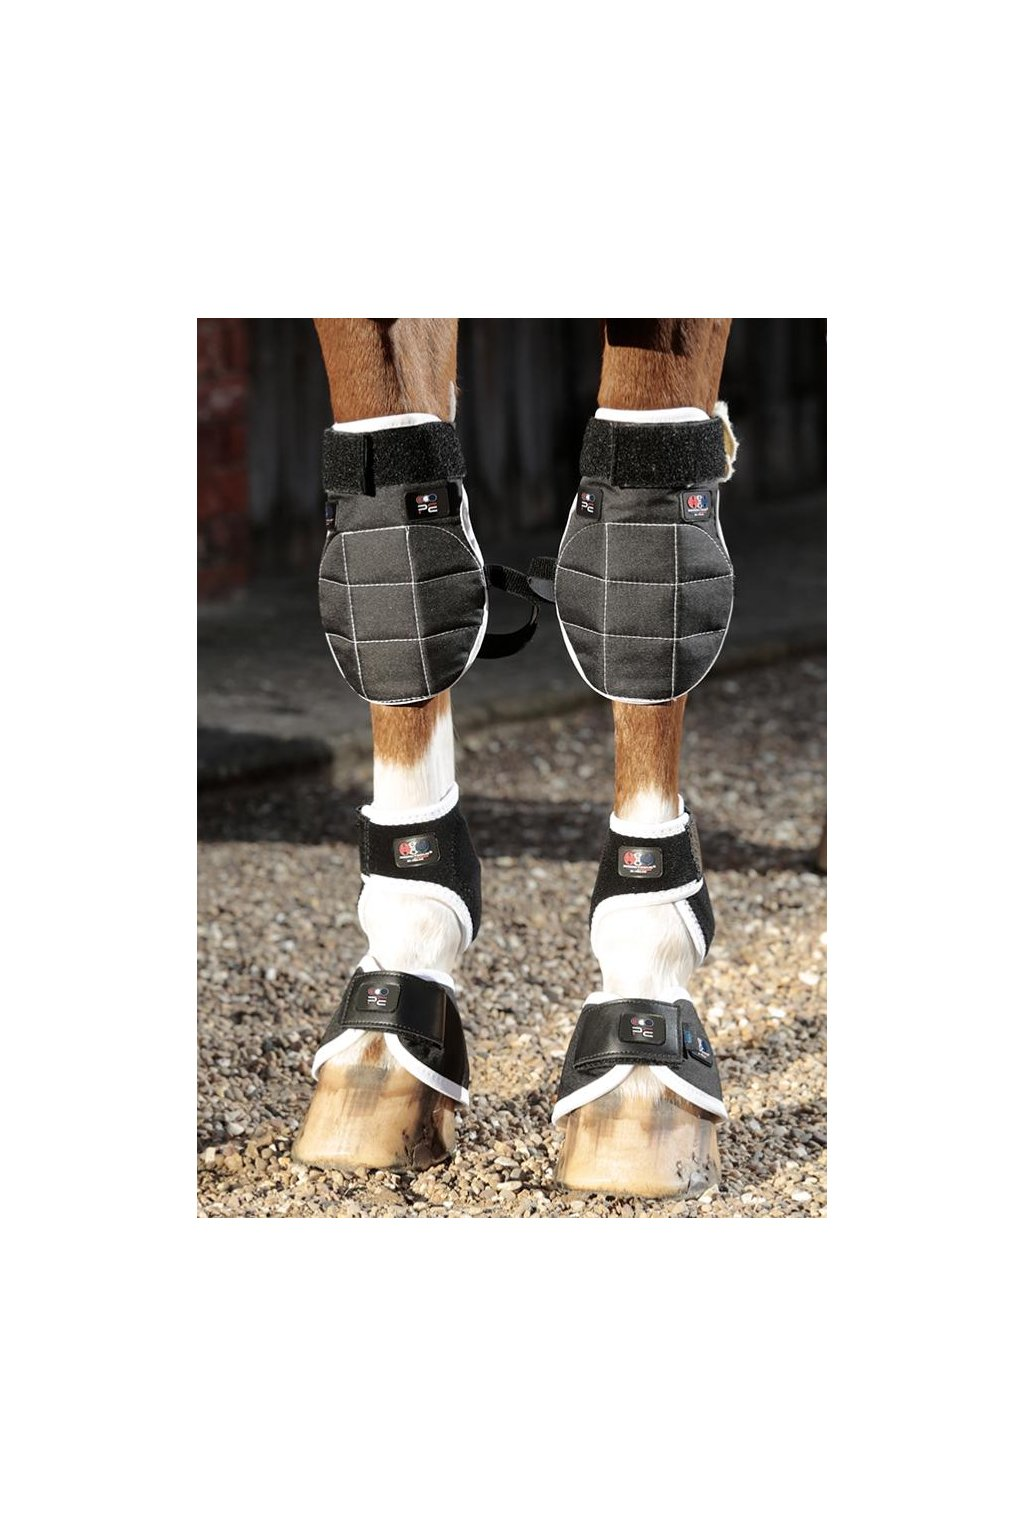 SS19 Magni Teque Hoof Fetlock Knee Boots Main Image RGB 72 zoom